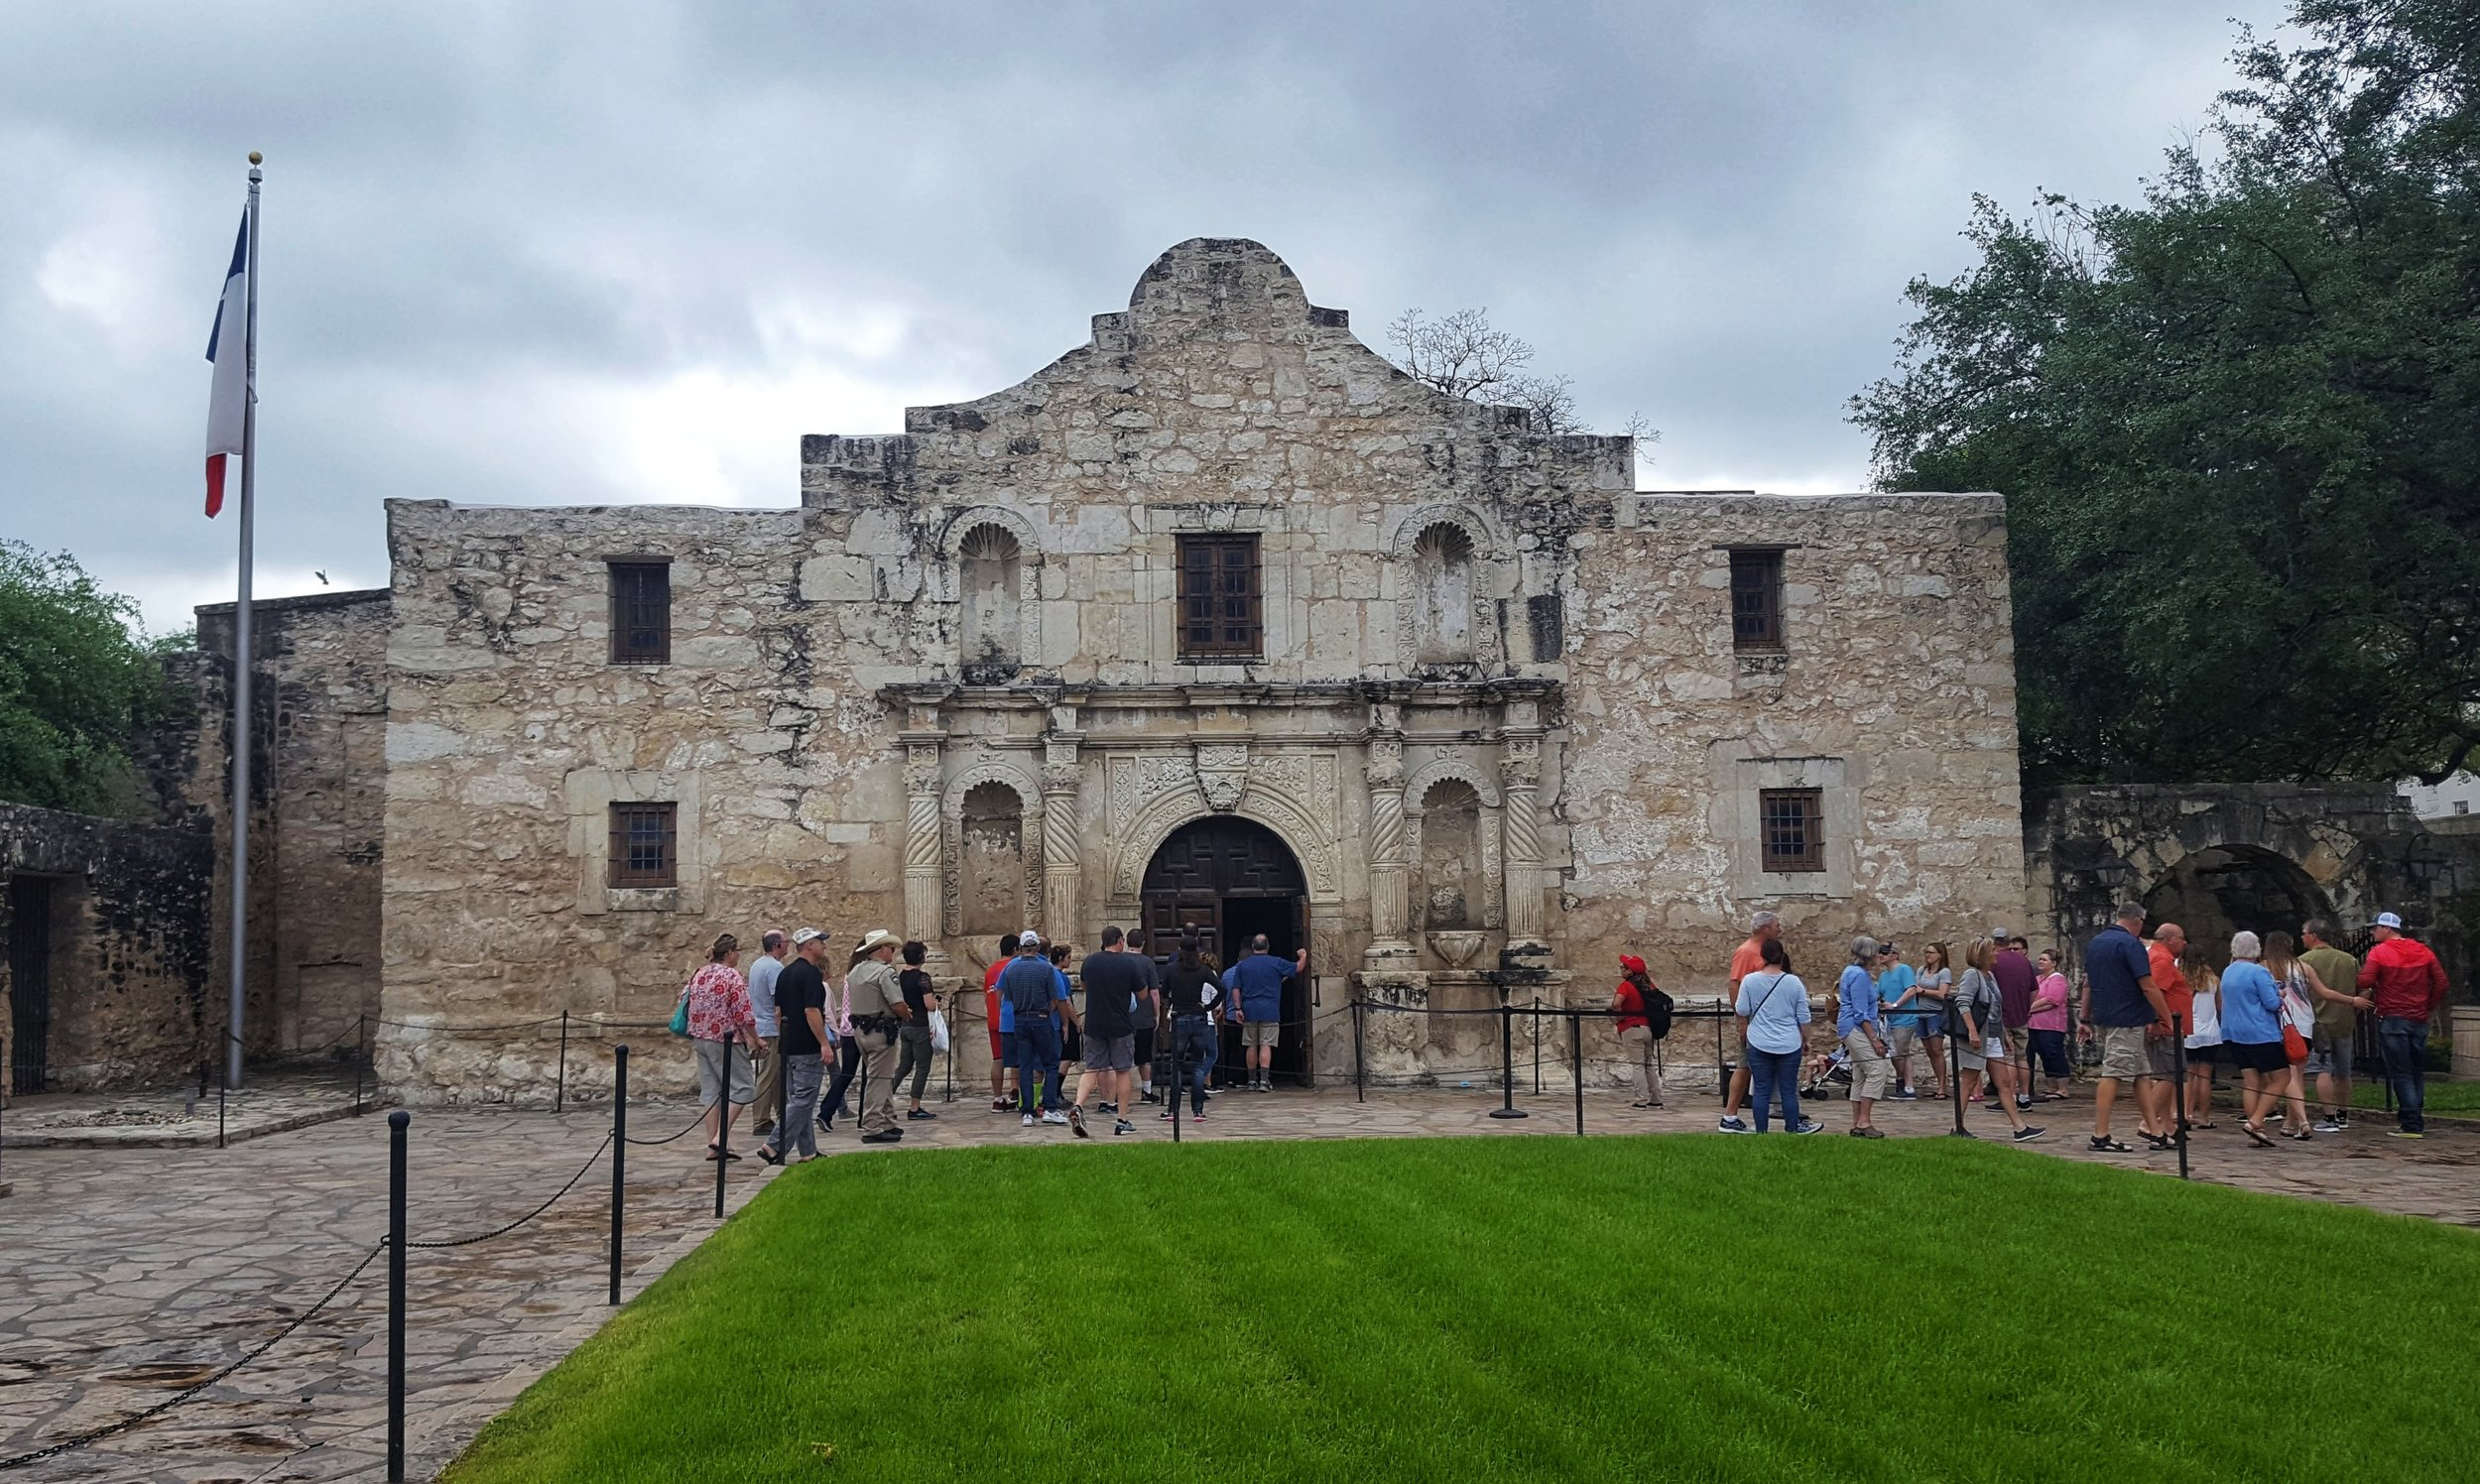 Please note: There is no basement in the Alamo...